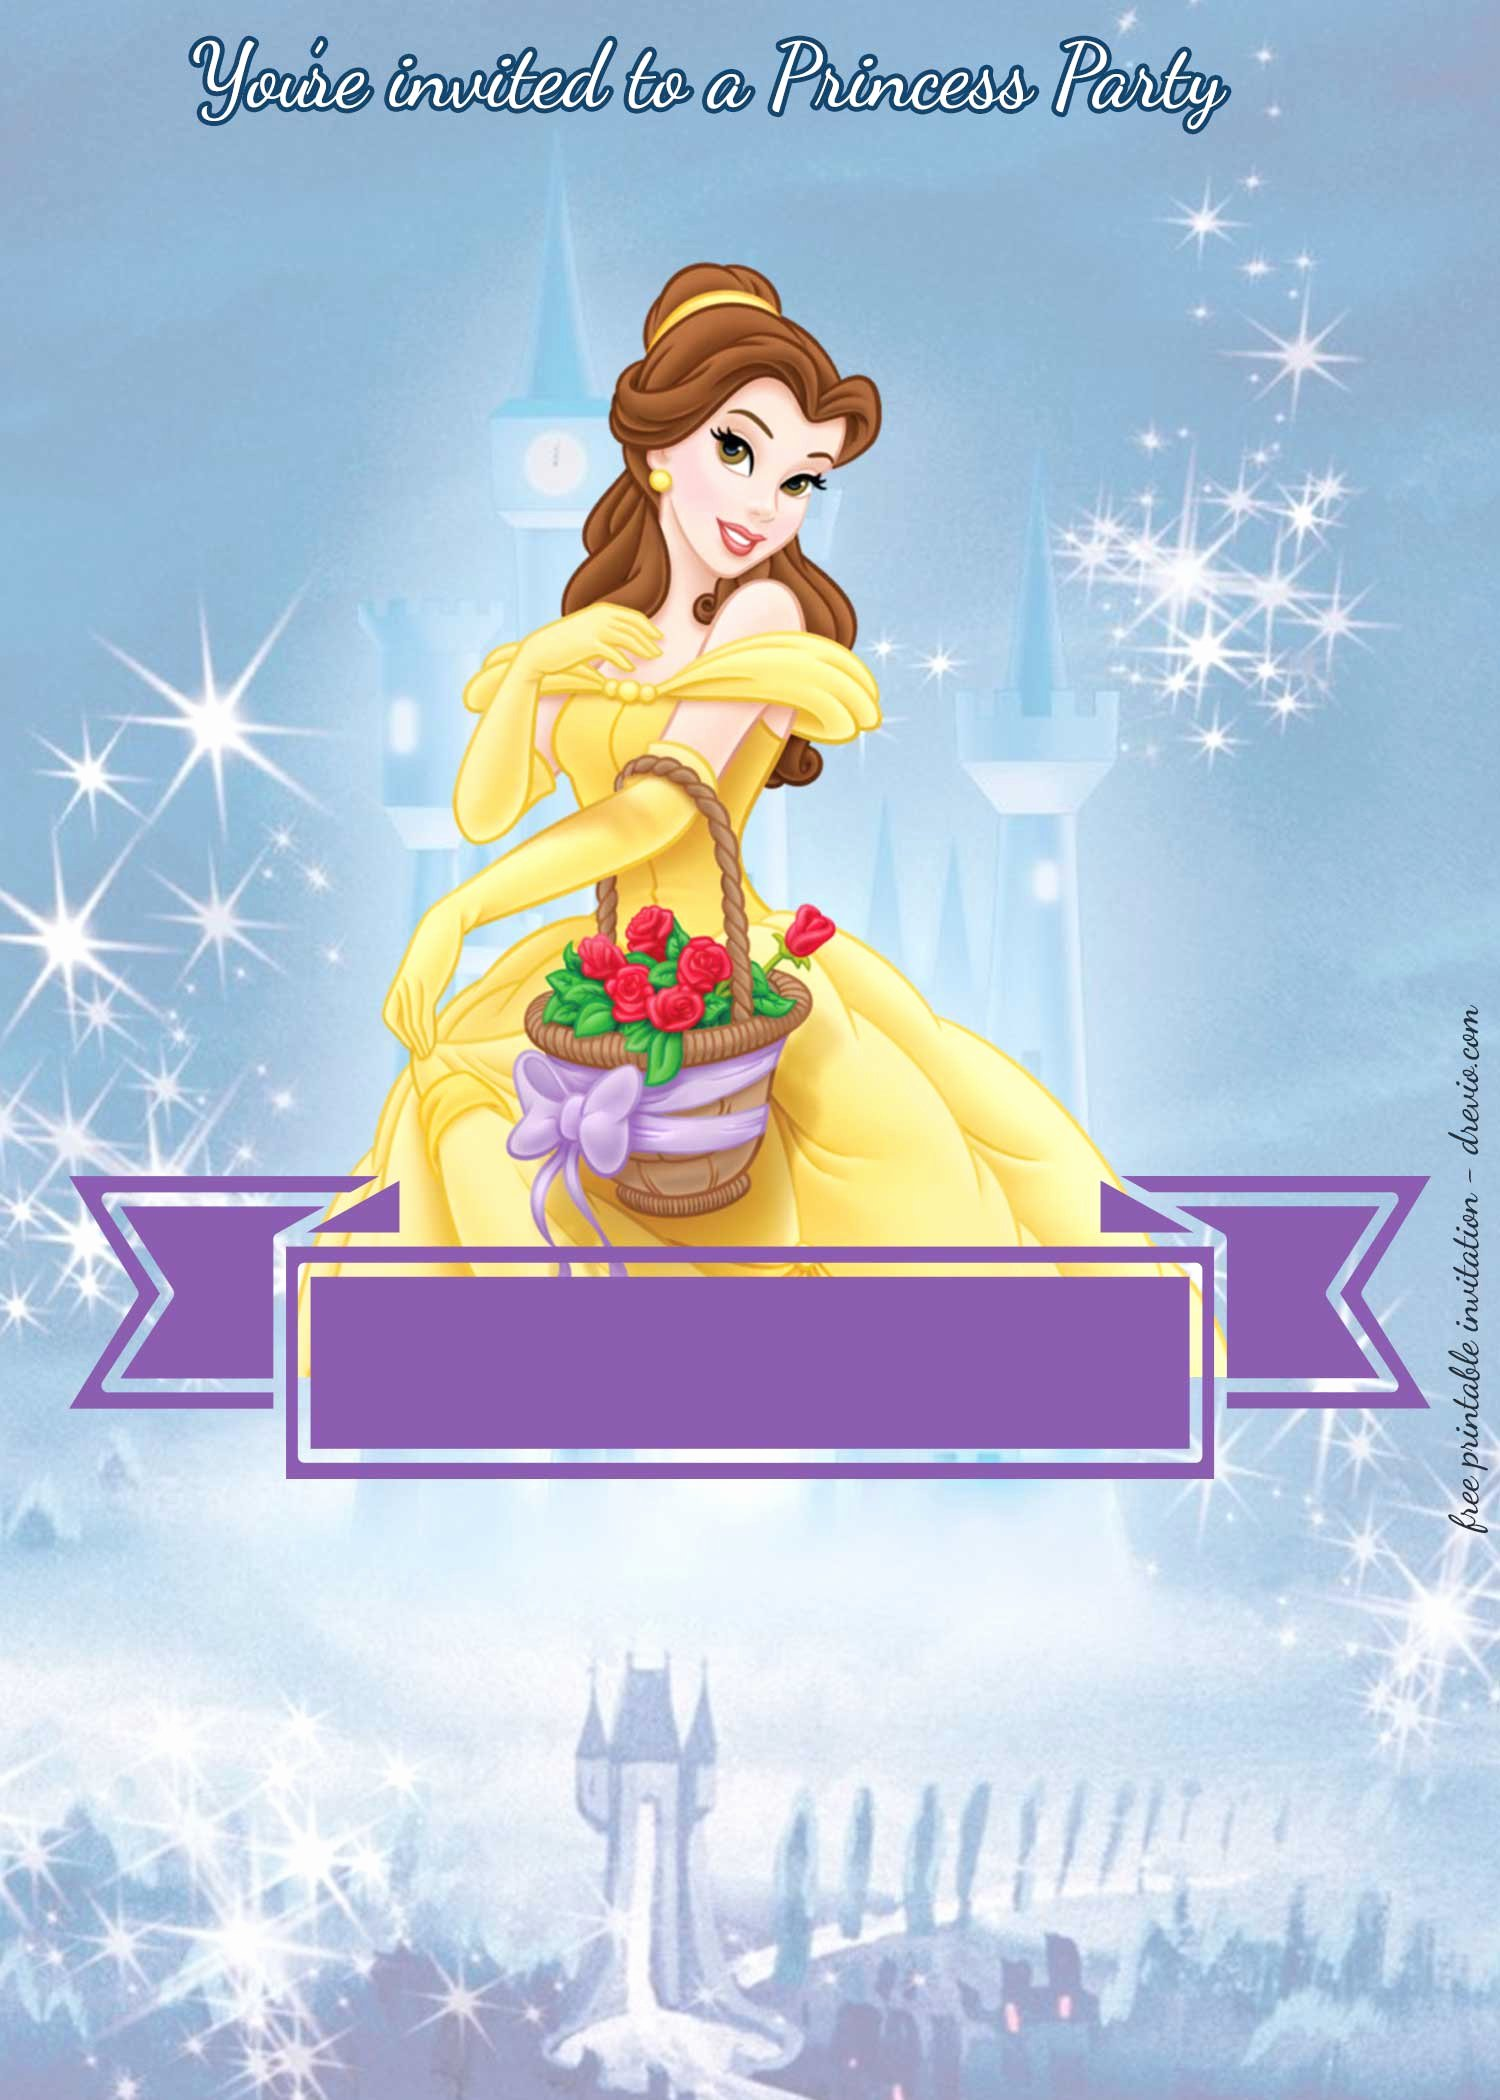 Disney Princess Invitation Template Lovely Free Disney Princesses Birthday Invitation Templates